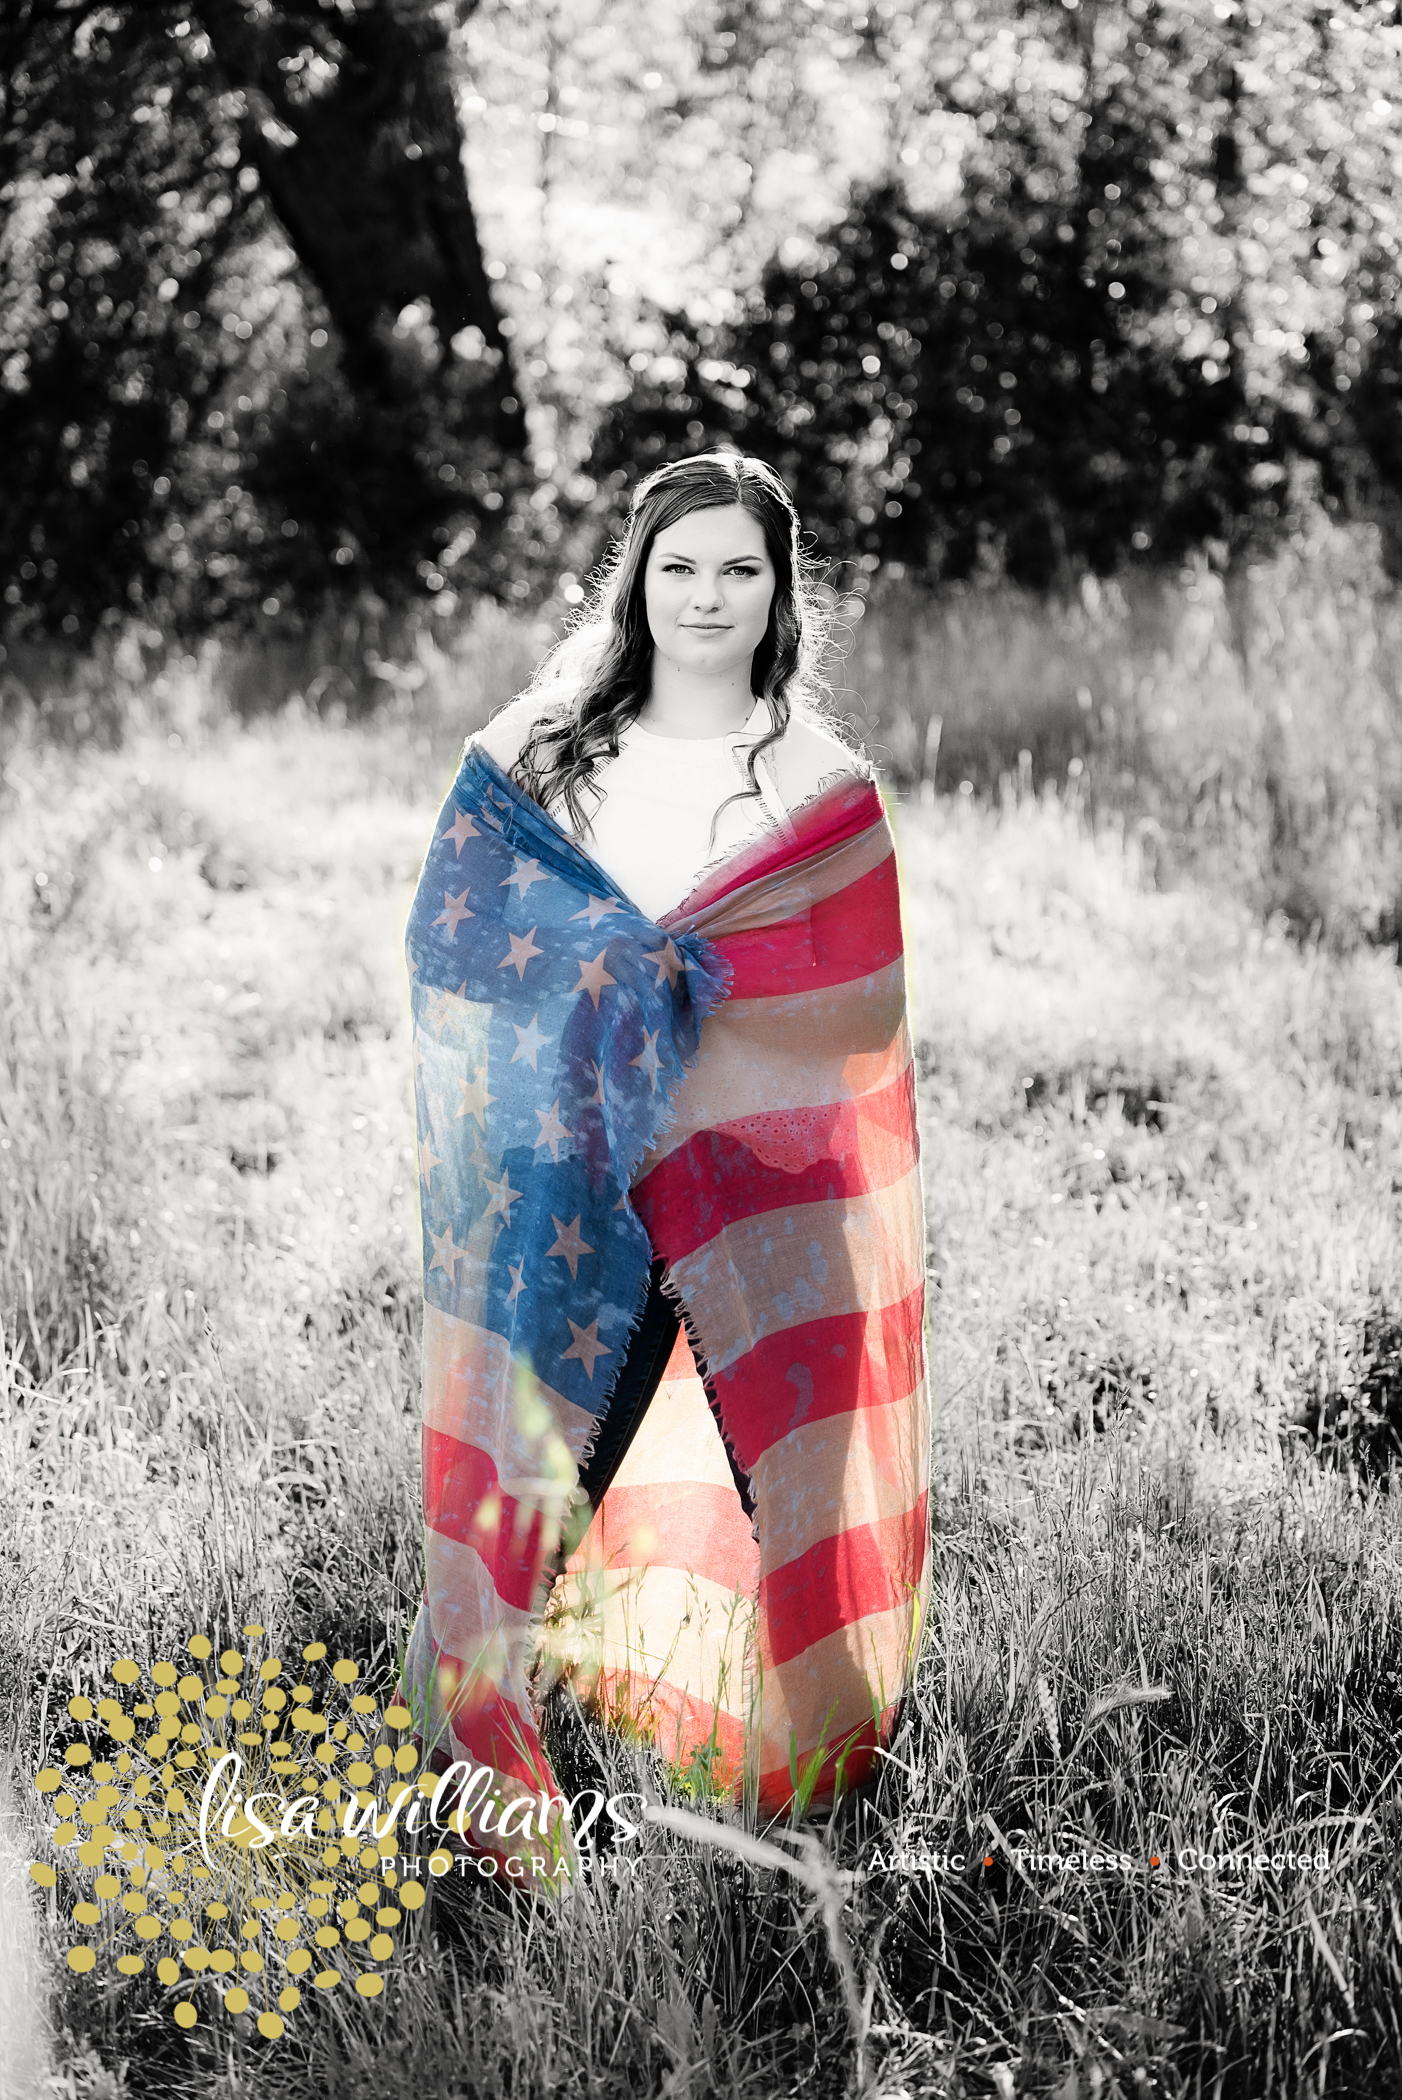 Lisa Williams photography – grass valley, Ca - Nevada county photographer – Colfax, CA – Rocklin – Roseville - Nevada City – Senior Portrait Photography – Alexa5.jpg